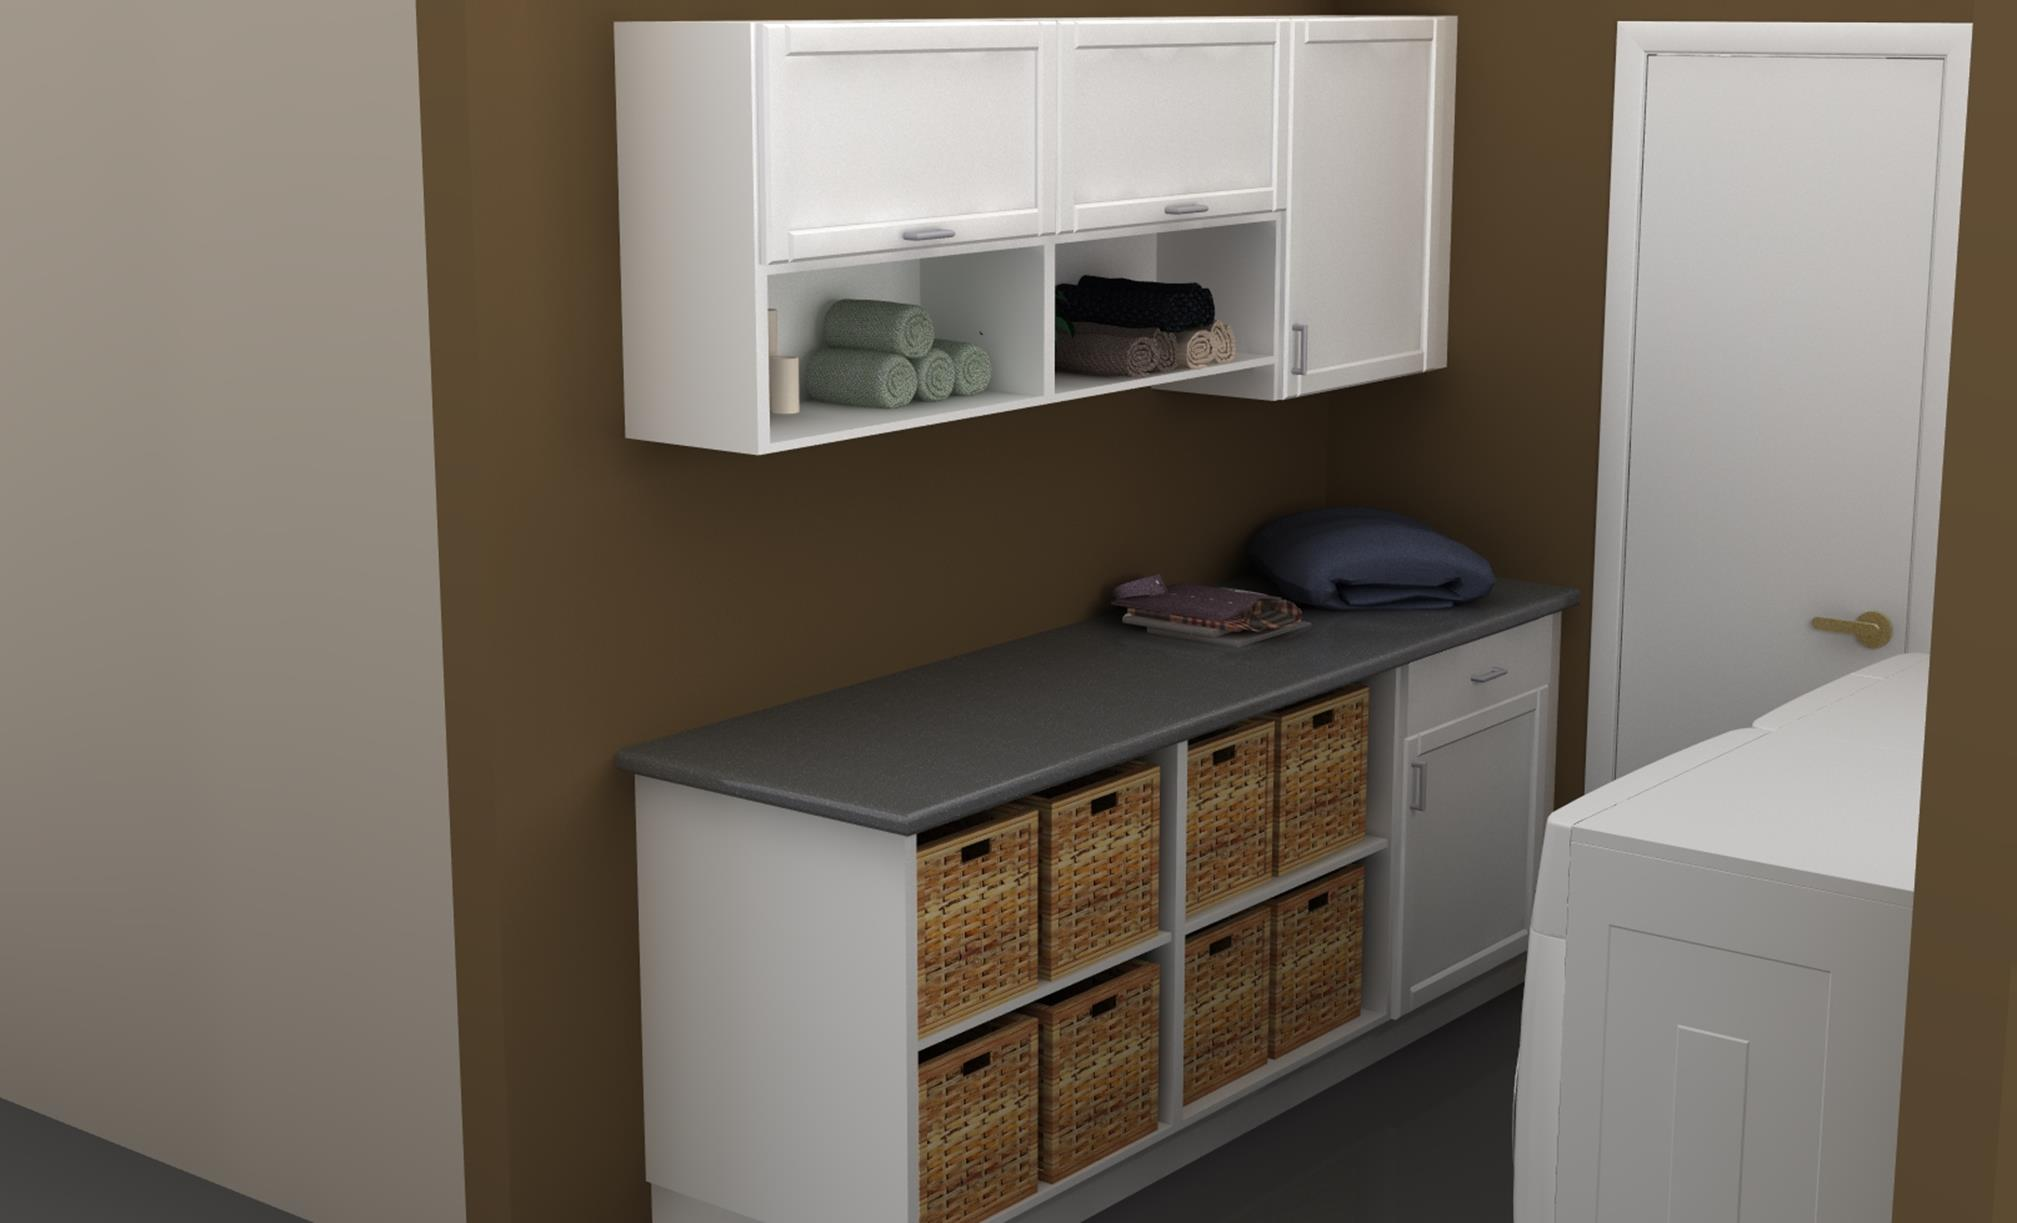 Best Cheap IKEA Cabinets Laundry Room Storage Ideas 32